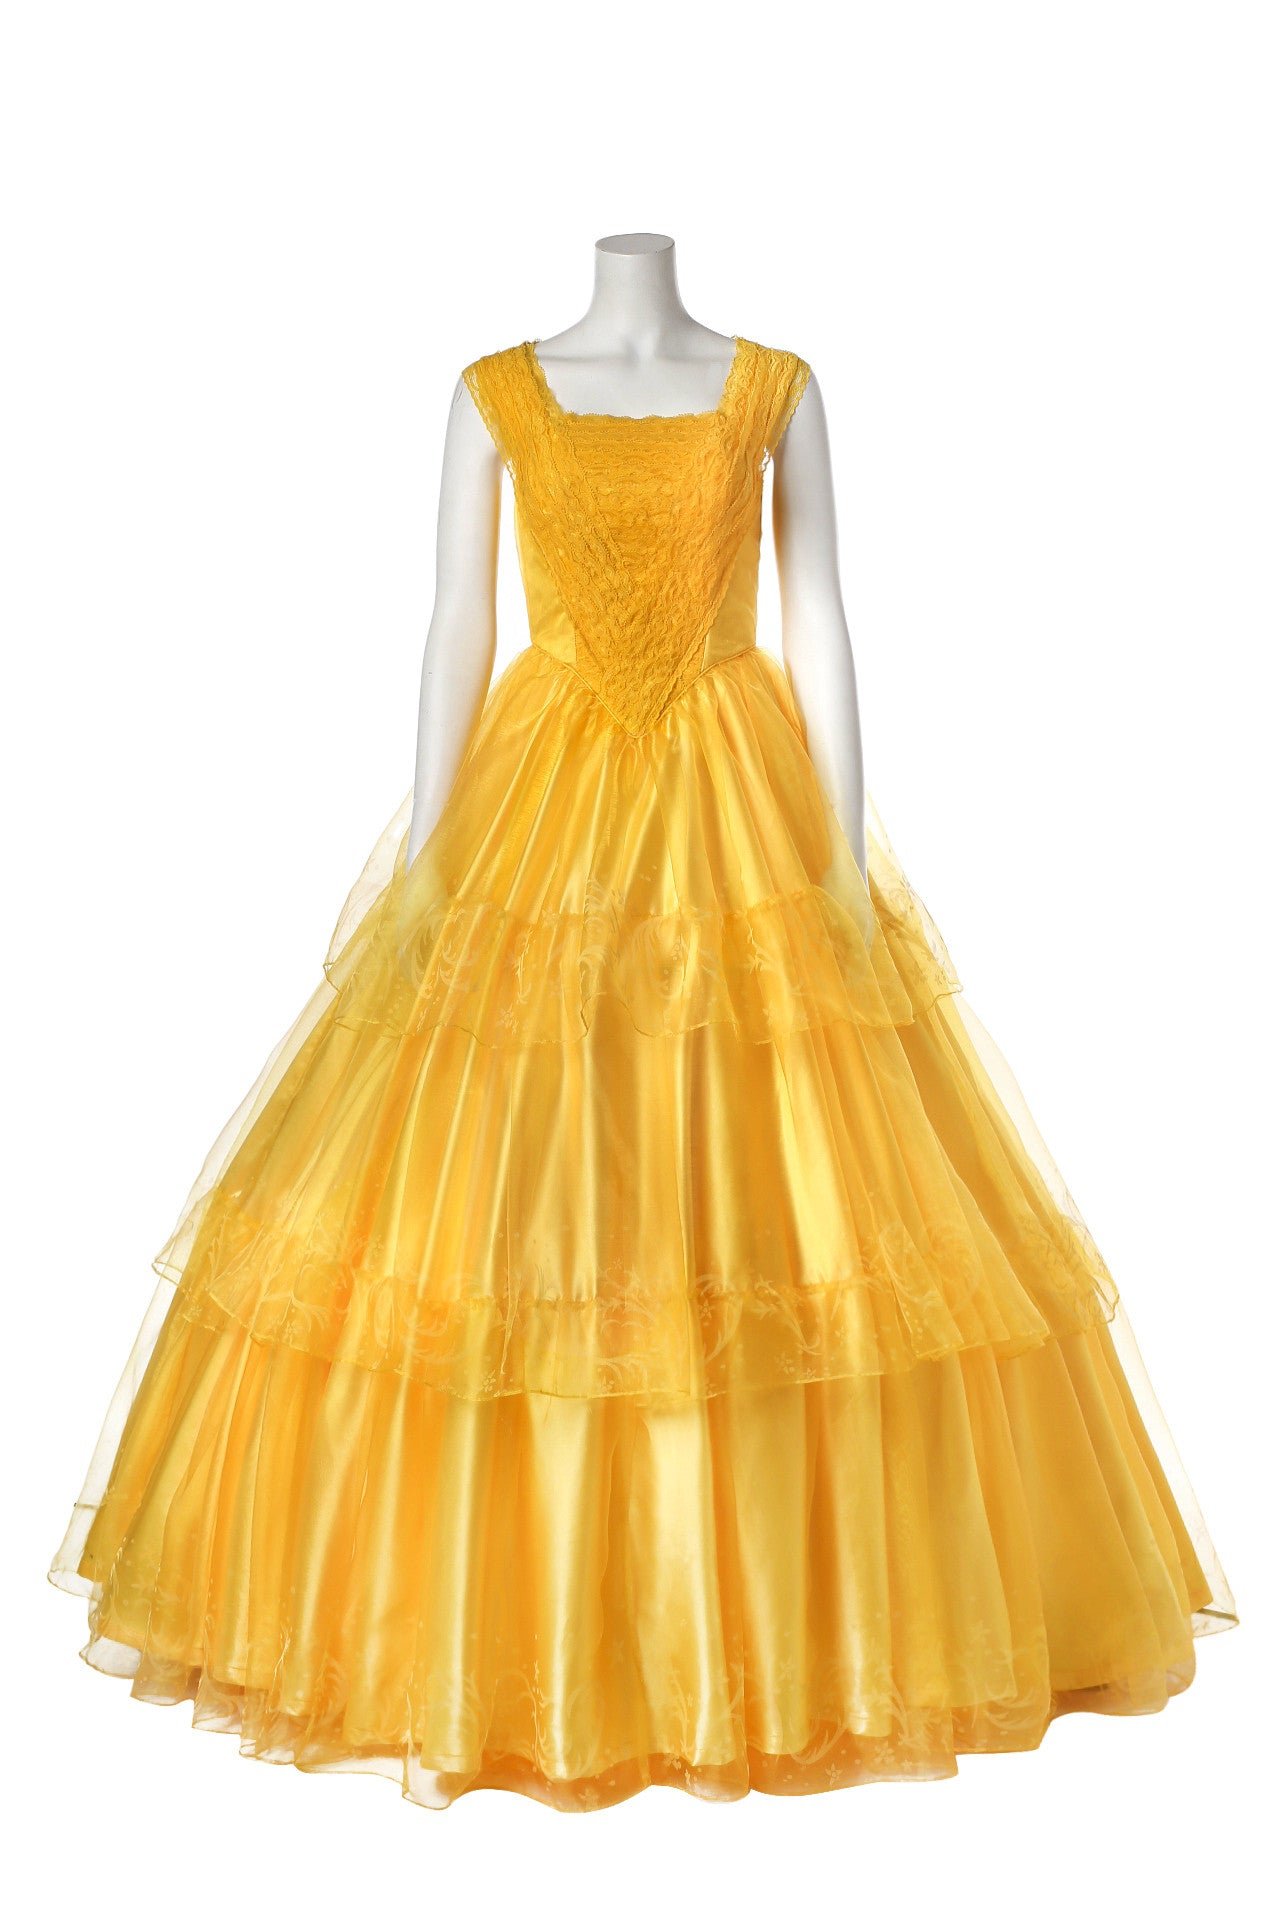 Beauty And The Beast Belle Cosplay Costume For Halloween Party Yellow Princess Dress